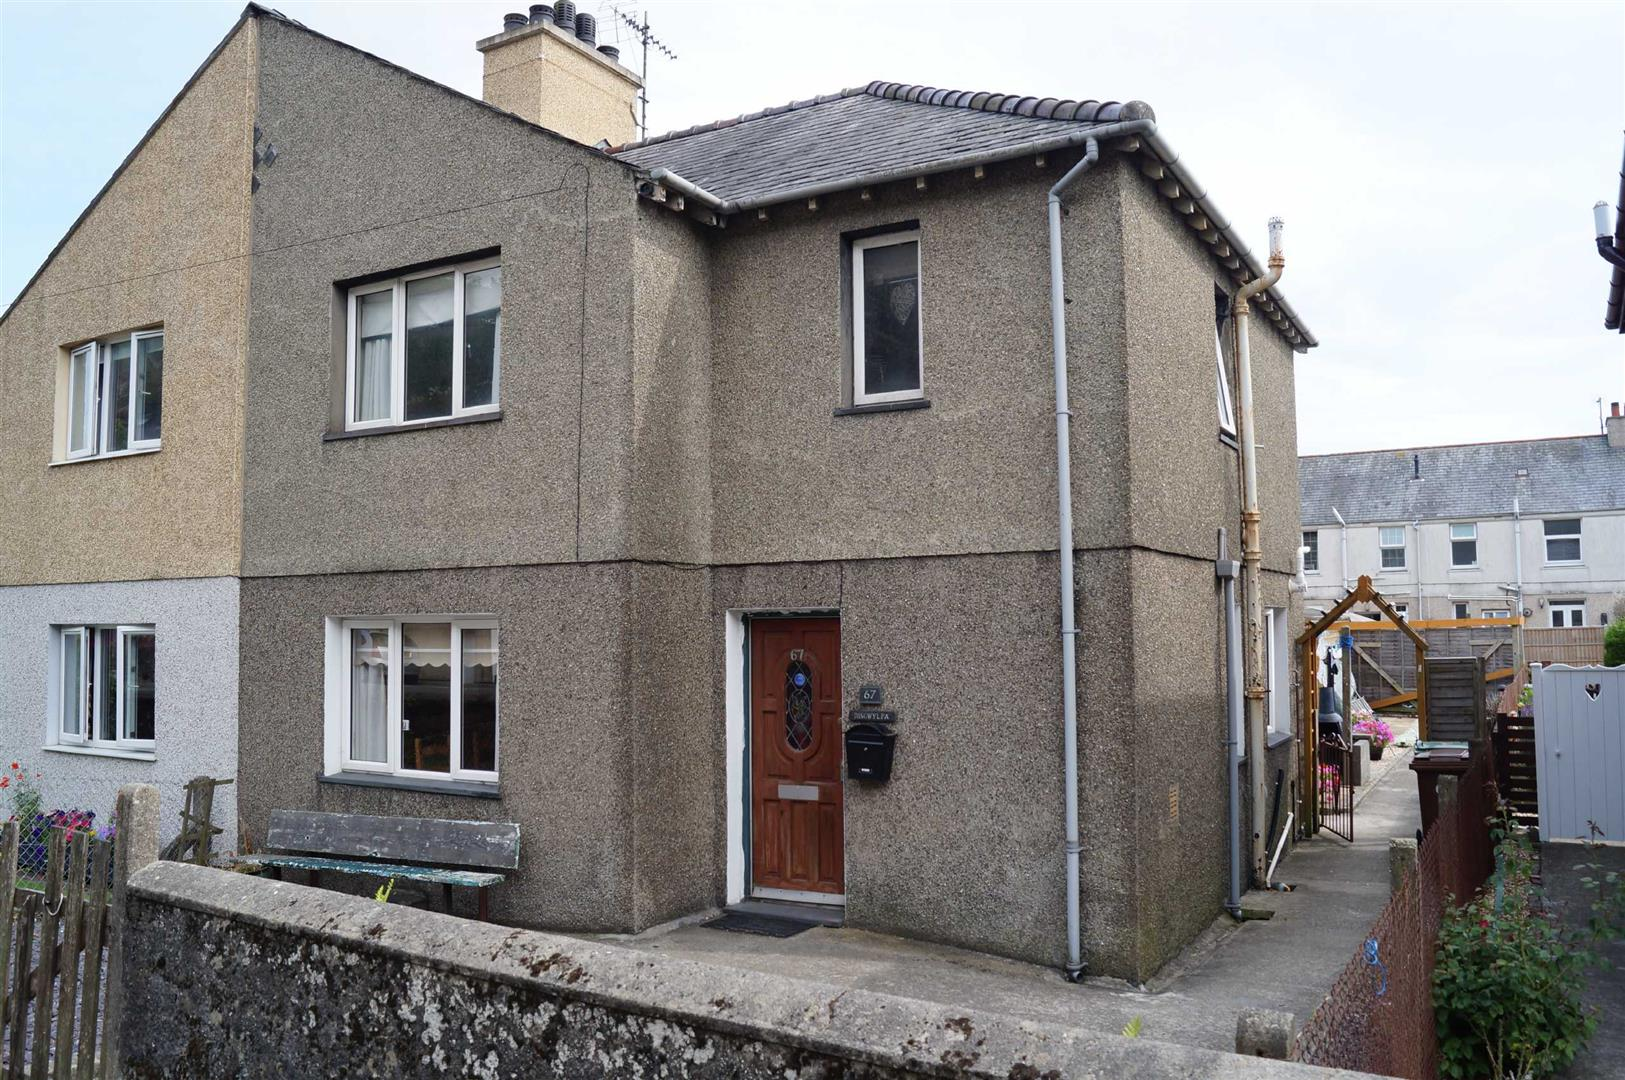 Abererch Road, Pwllheli - £135,000